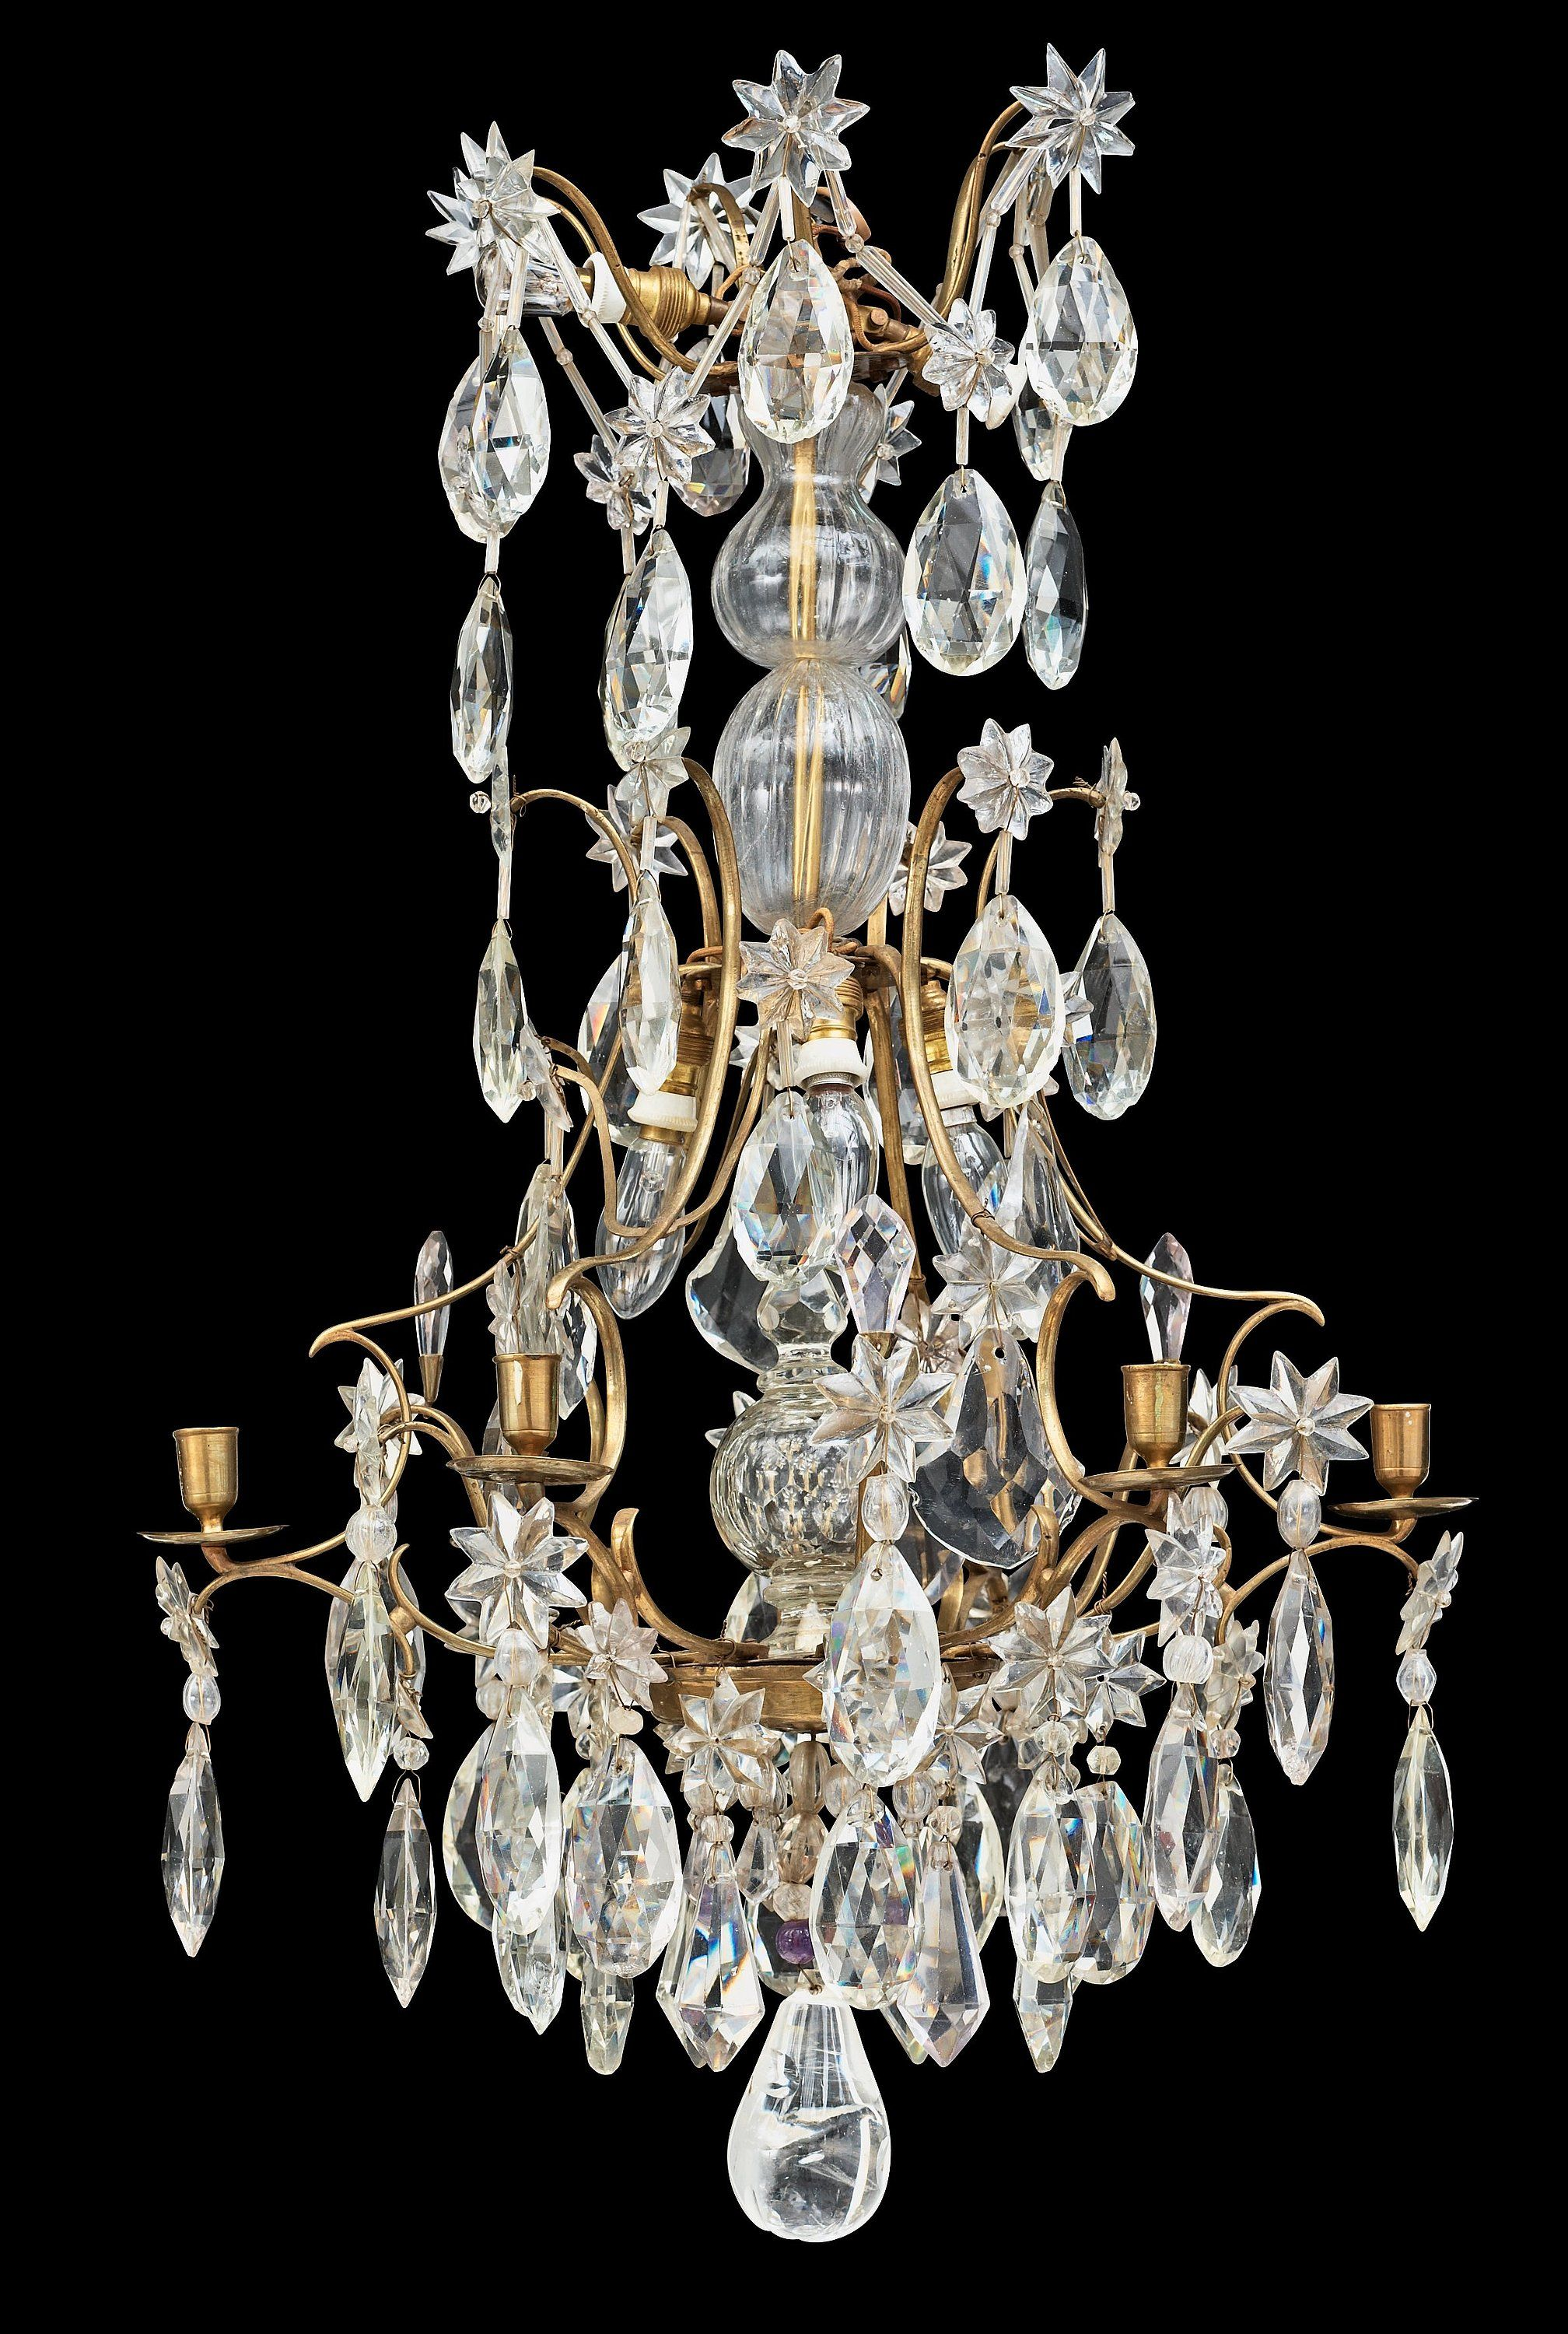 A swedish rococo 18th century six light chandelier 18th c sweden a swedish rococo 18th century six light chandelier arubaitofo Image collections